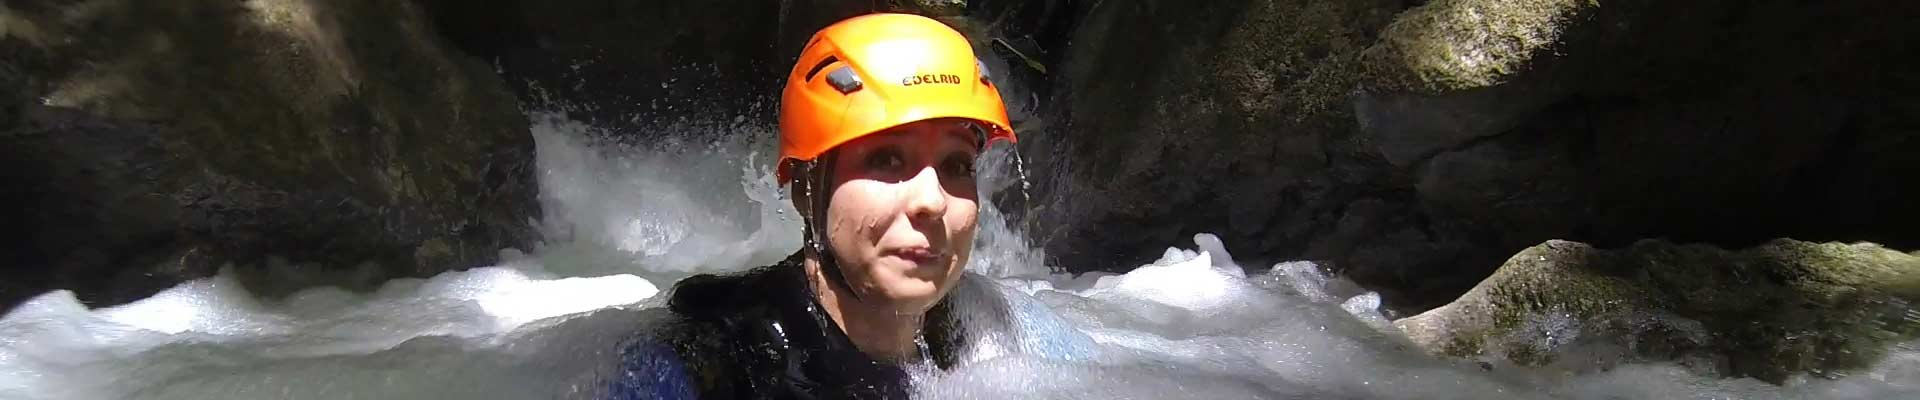 terreo-canyoning-decouvverte-annecy-2